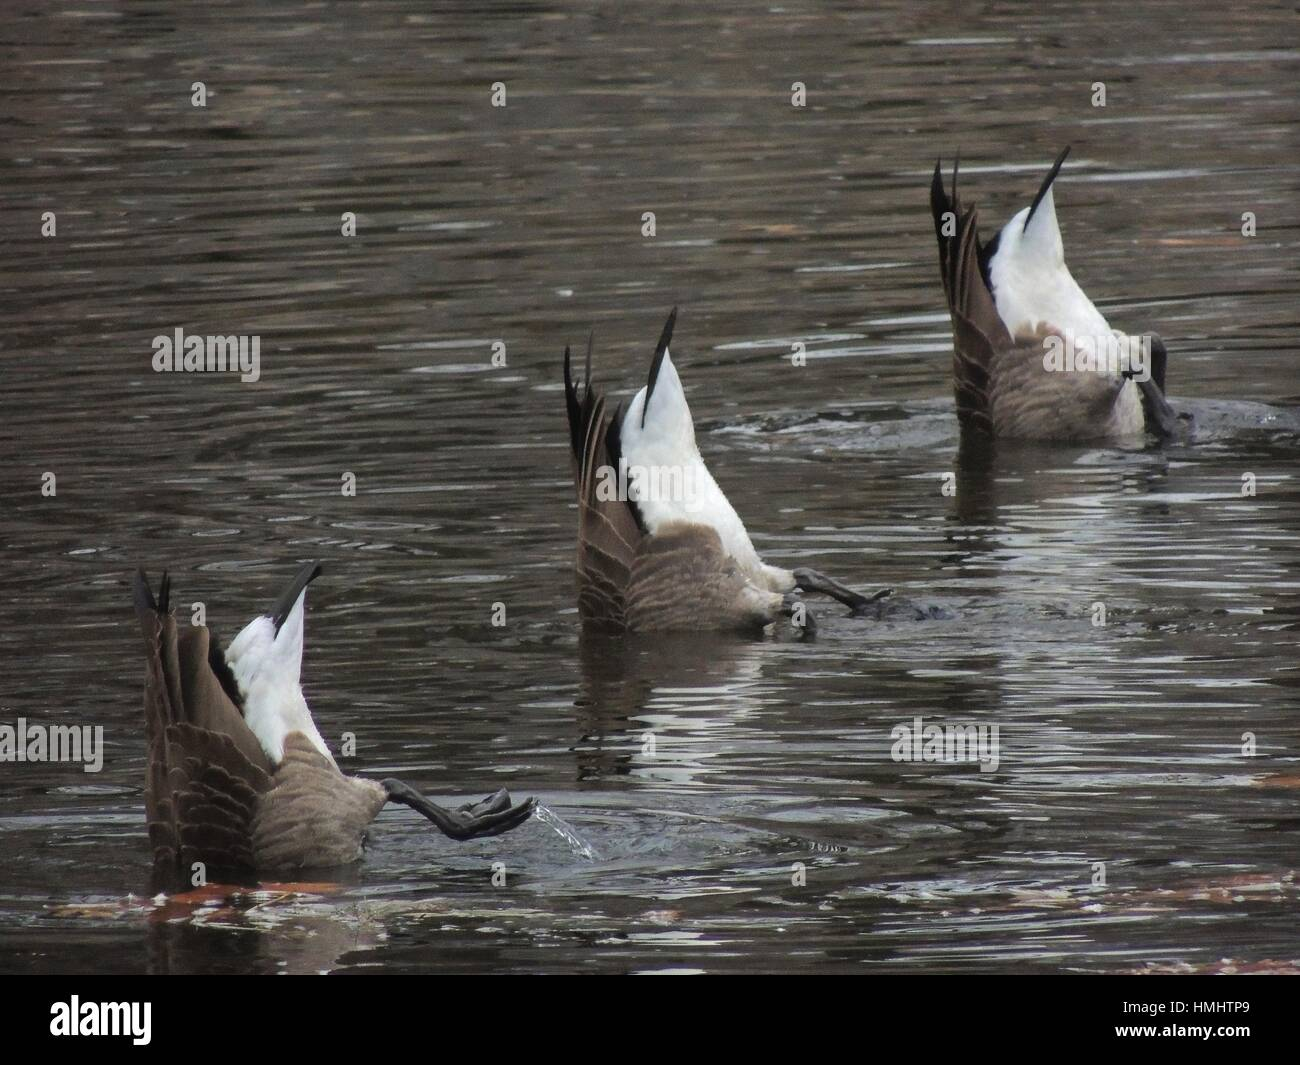 Three geese put their bottoms in the air to search for food beneath the surface of a stream, Pennsylvania, USA. - Stock Image